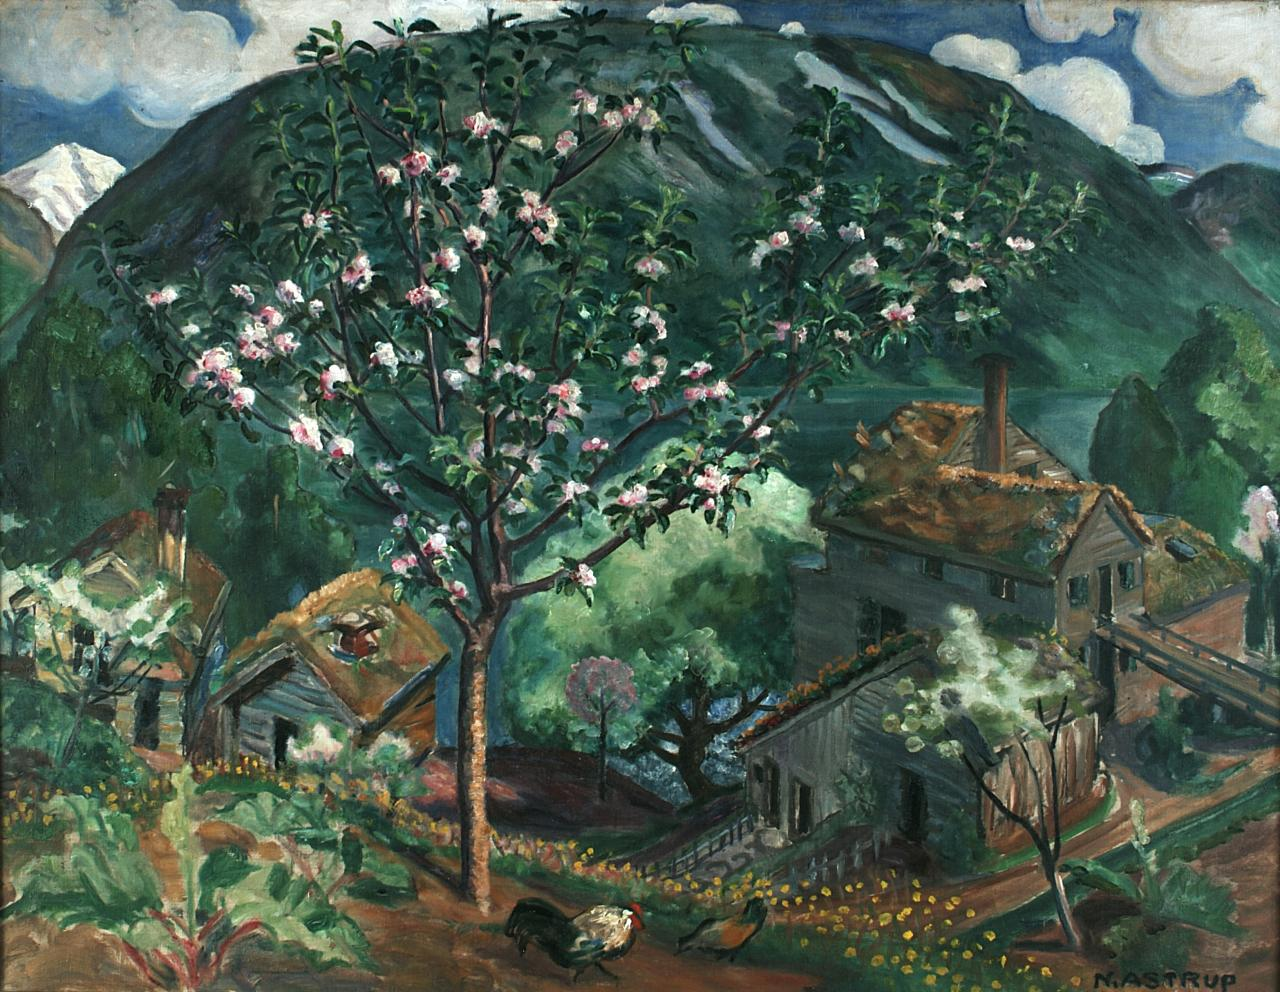 Apple Tree in Bloom via Nikolai-AstrupdotNo.jpg